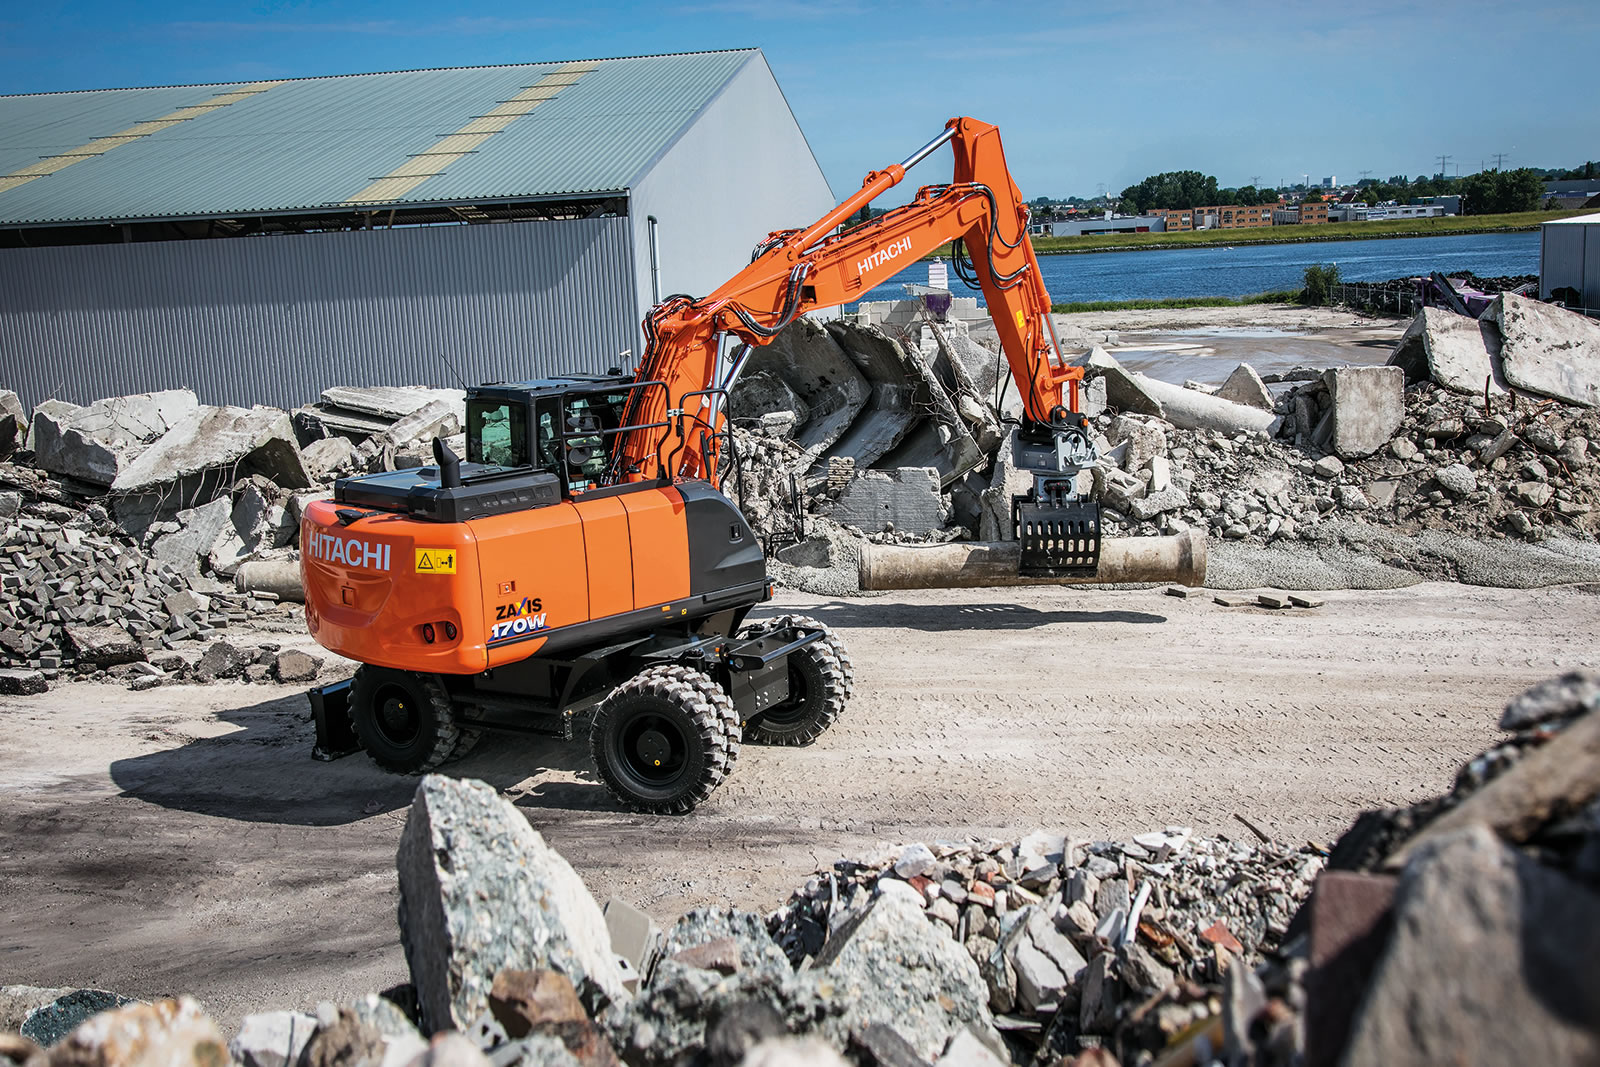 Zaxis-6 wheeled excavators offer high productivity